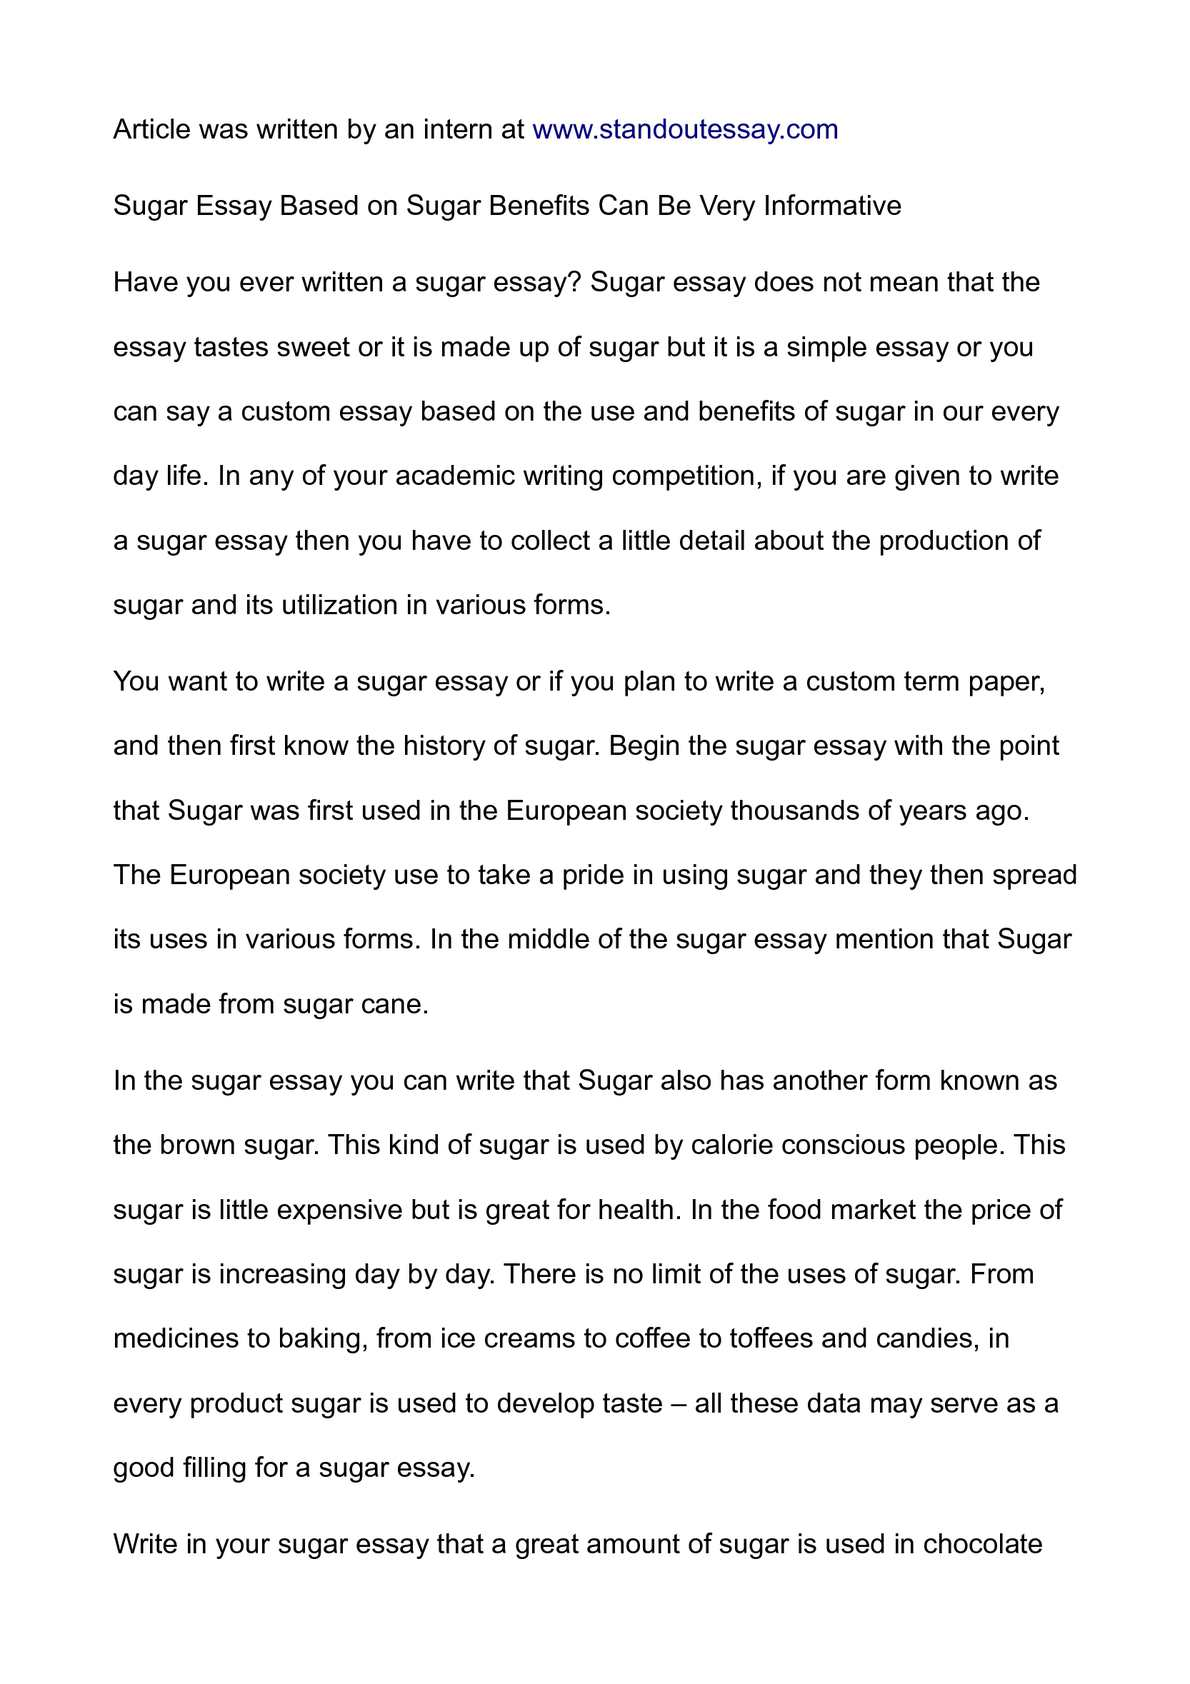 sugar essay based on sugar benefits can be very informative